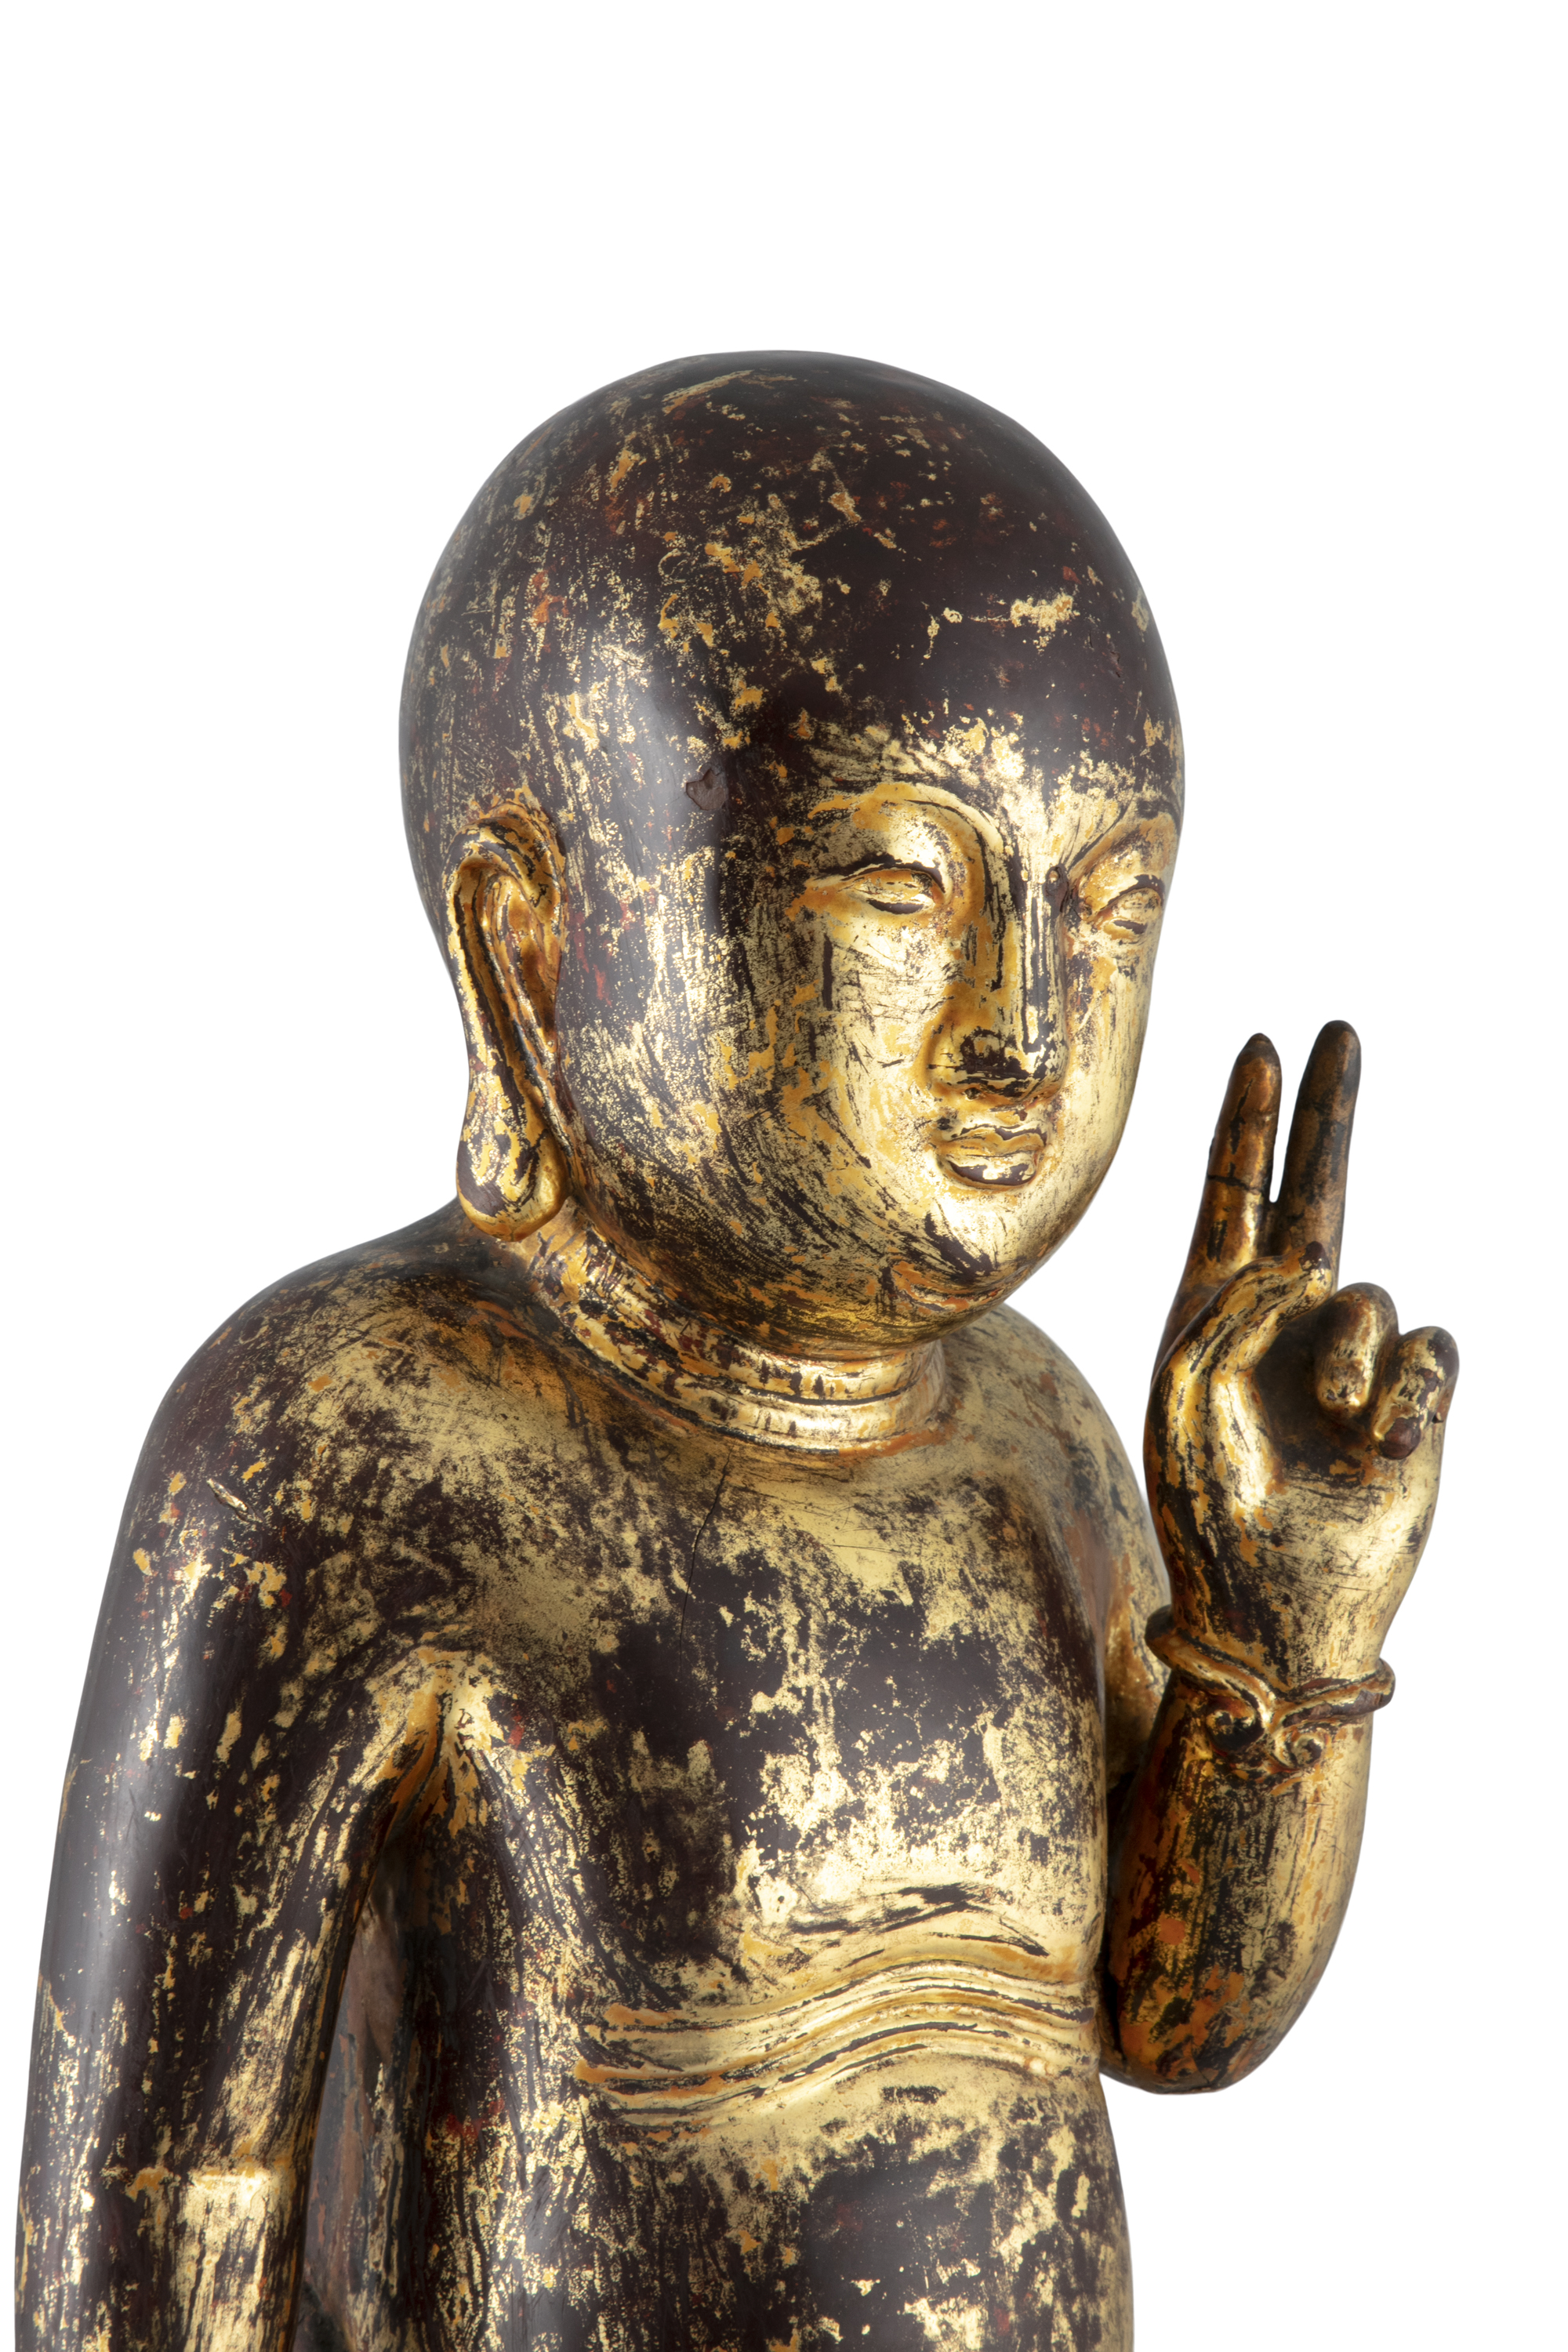 A LARGE GILT-LACQUERED WOODEN SCULPTURE OF THE STANDING INFANT BUDDHA China, Qing Dynasty (or